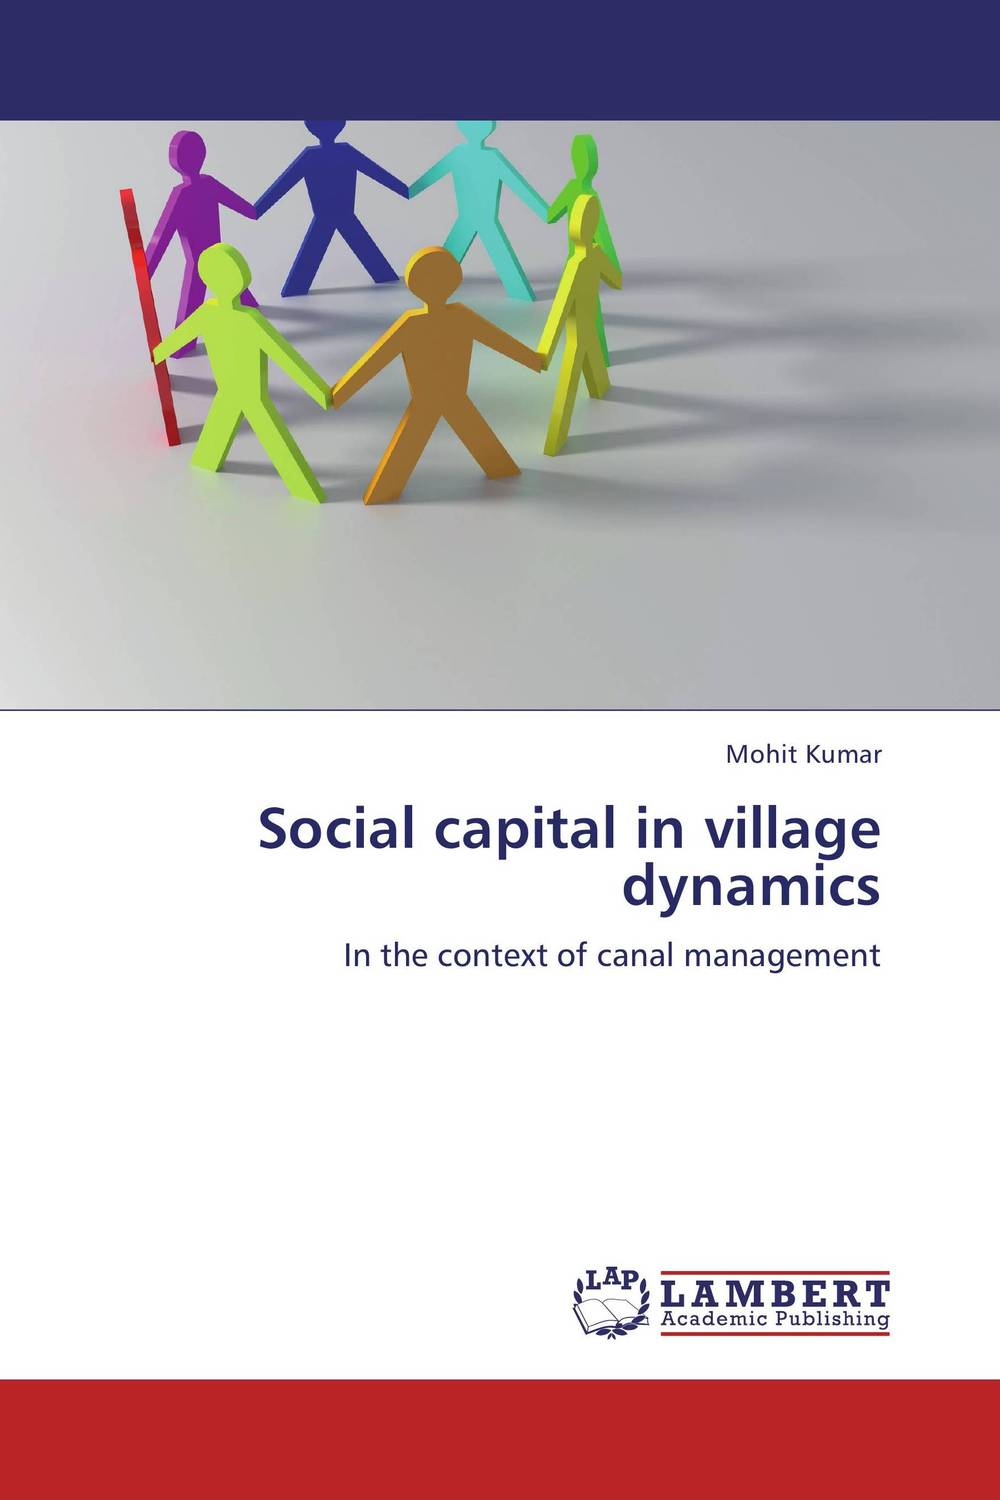 Social capital in village dynamics i manev social capital and strategy effectiveness an empirical study of entrepreneurial ventures in a transition economy